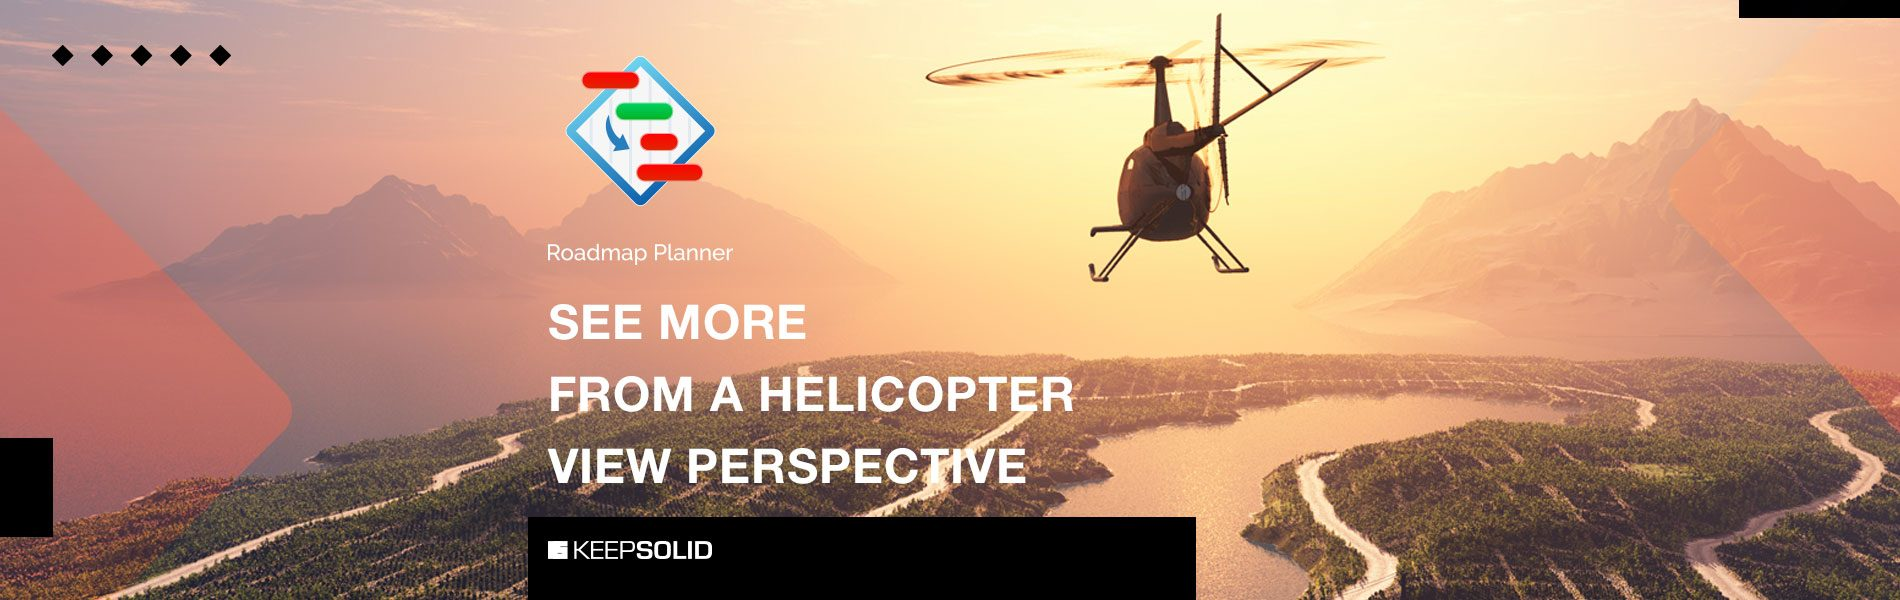 A flying helicopter symbolizing helicopter view on your business